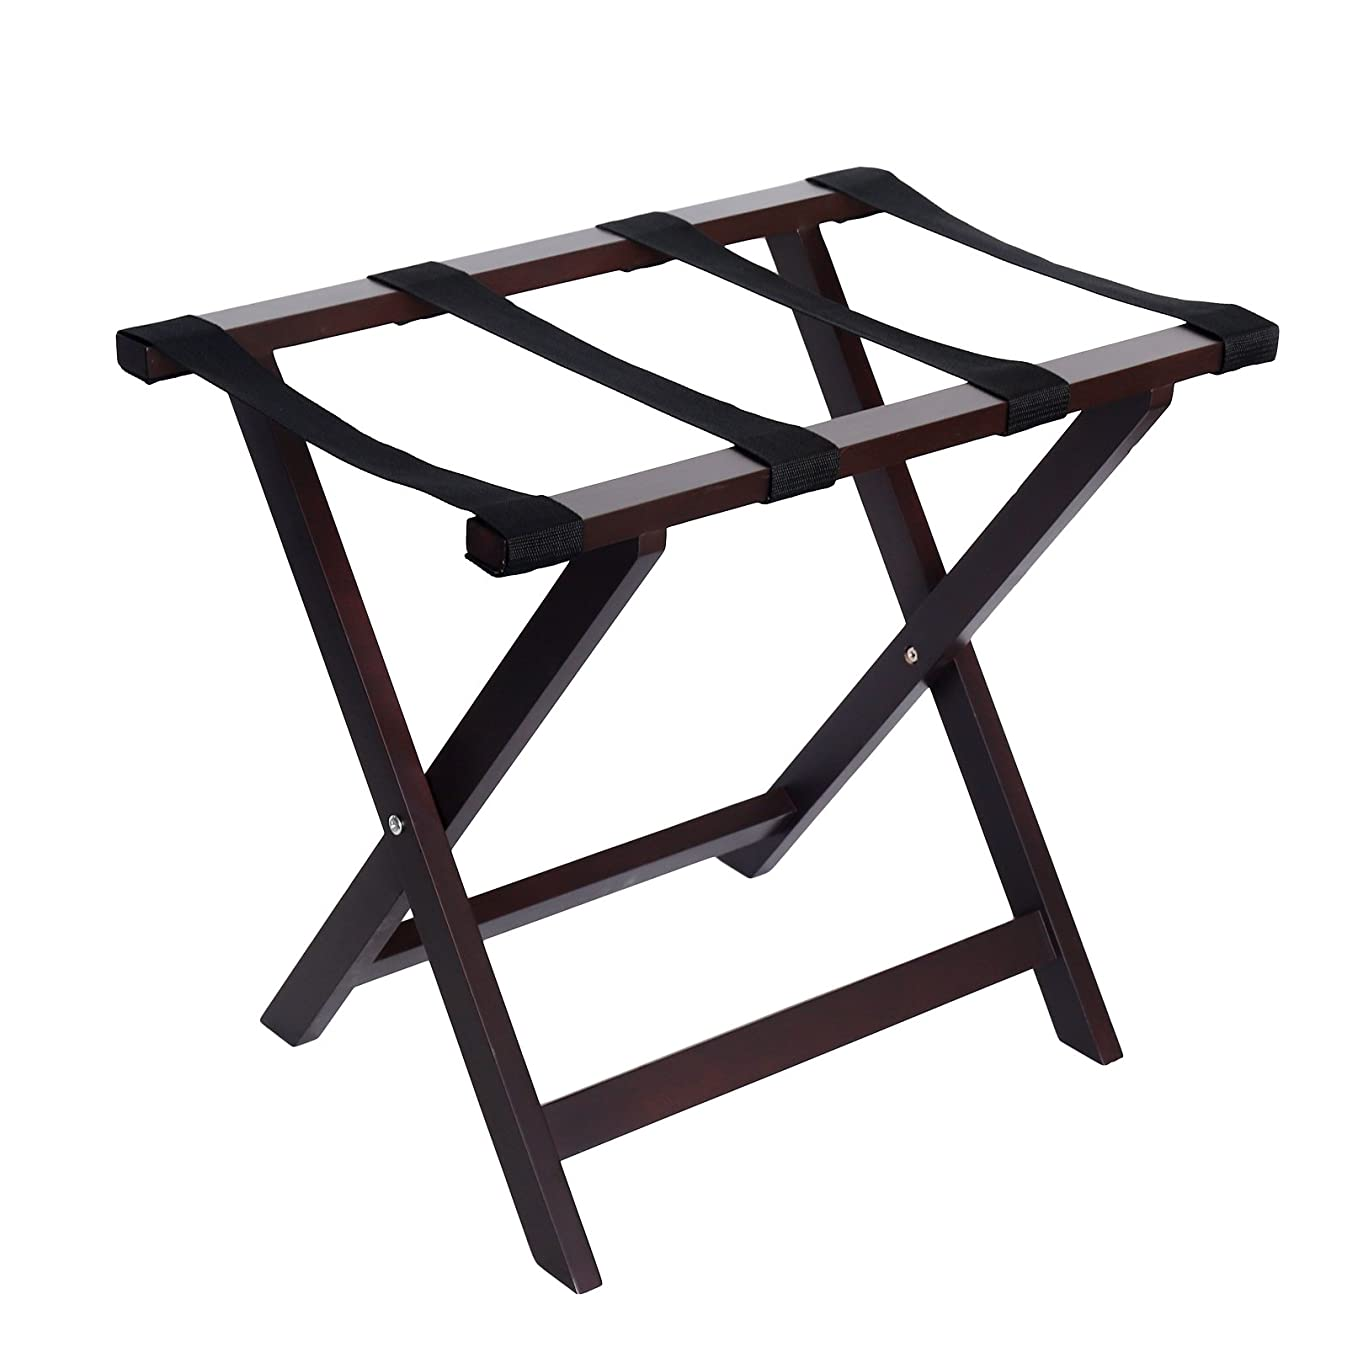 WELLAND Wood Folding Luggage Rack Luggage Stand for Suitcase for Home Bedroom Guestroom, Espresso